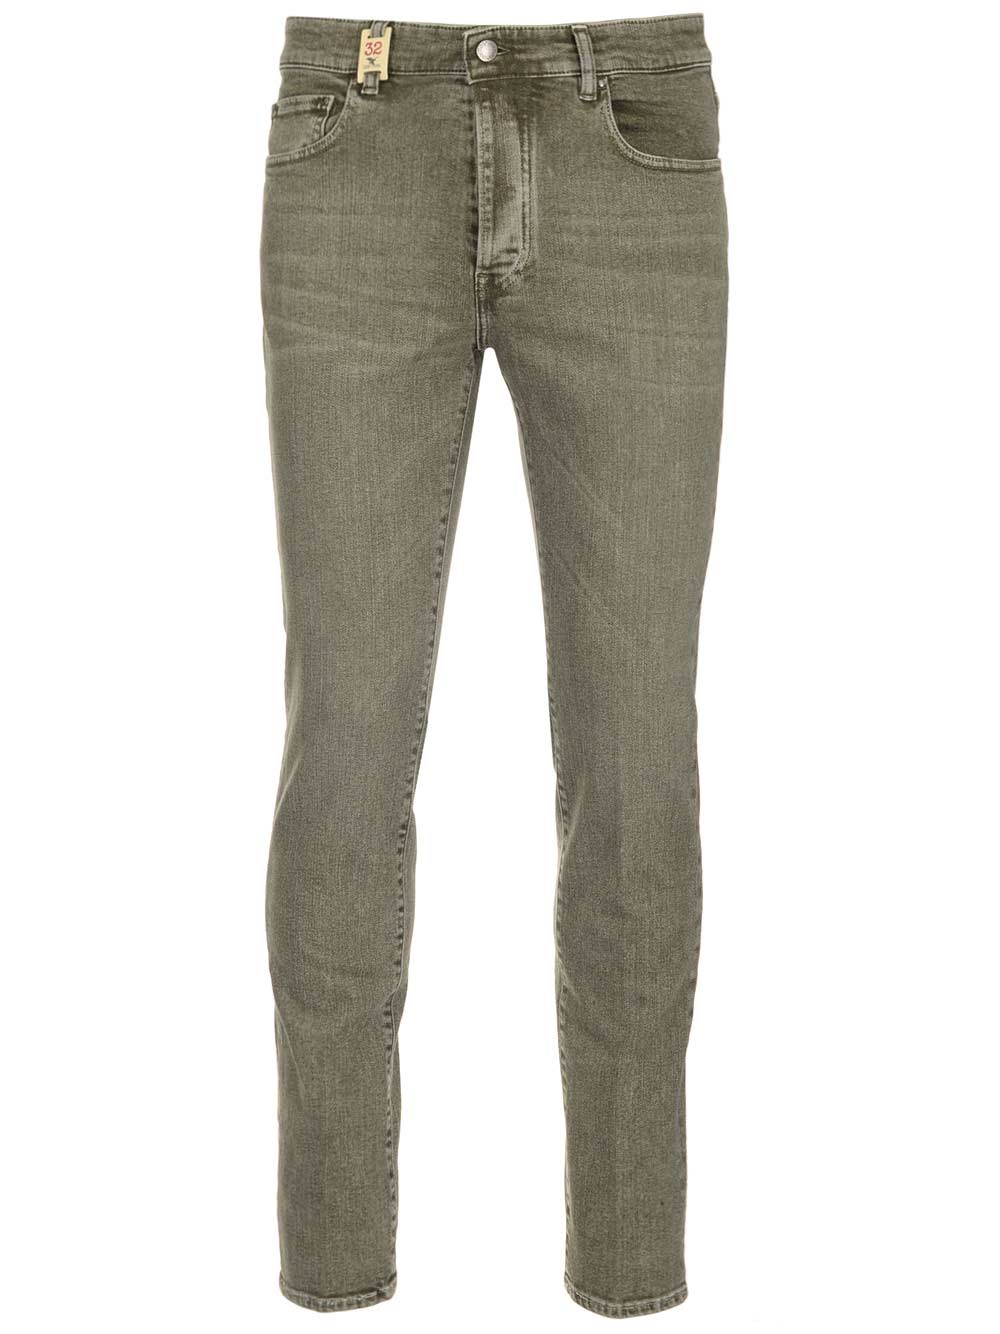 BARMAS Khaki Green Slim Fit Jeans